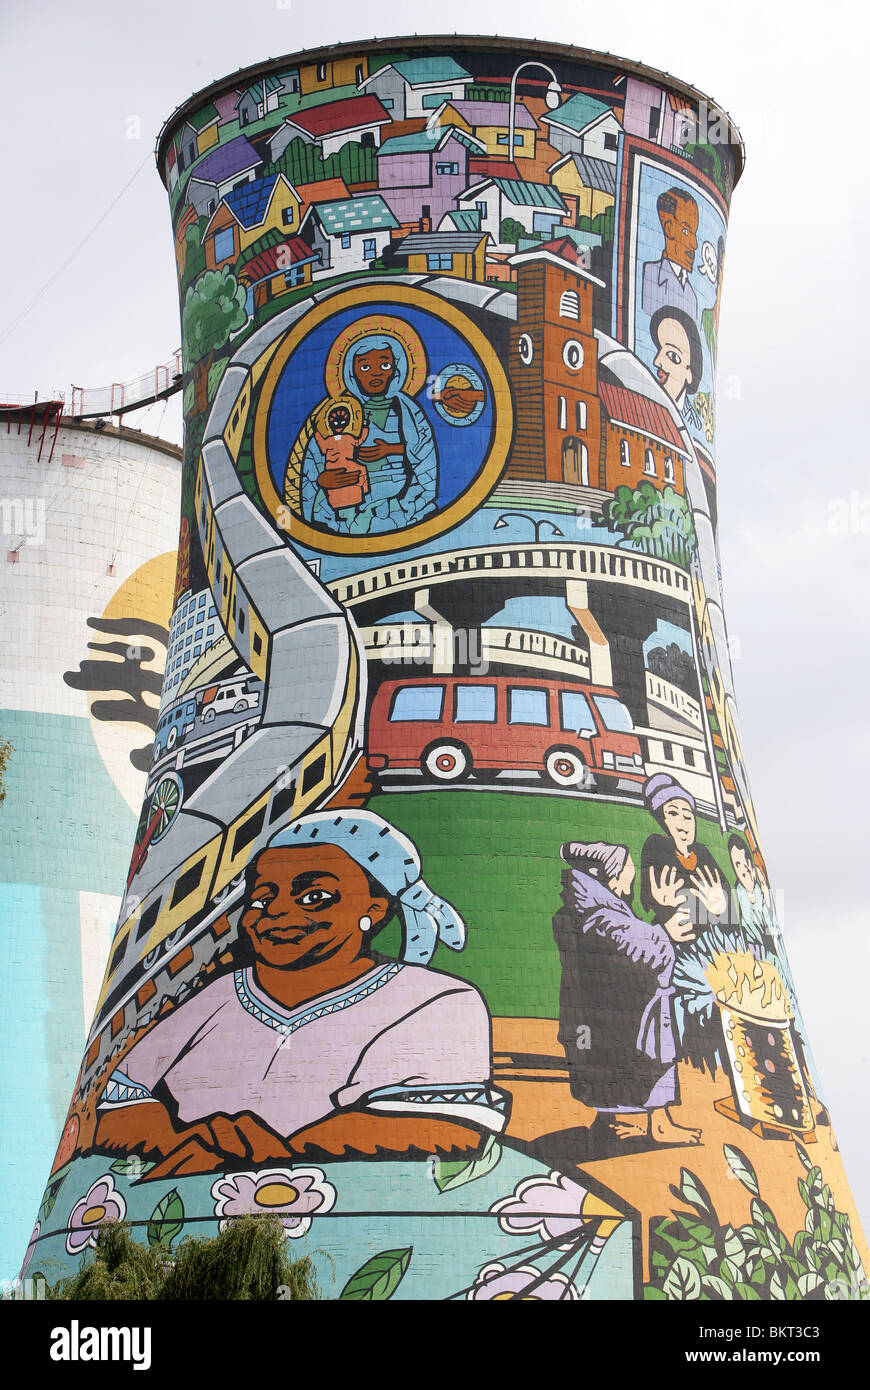 Painted Power Station Cooling Tower in Soweto, Johannesburg, South Africa - Stock Image